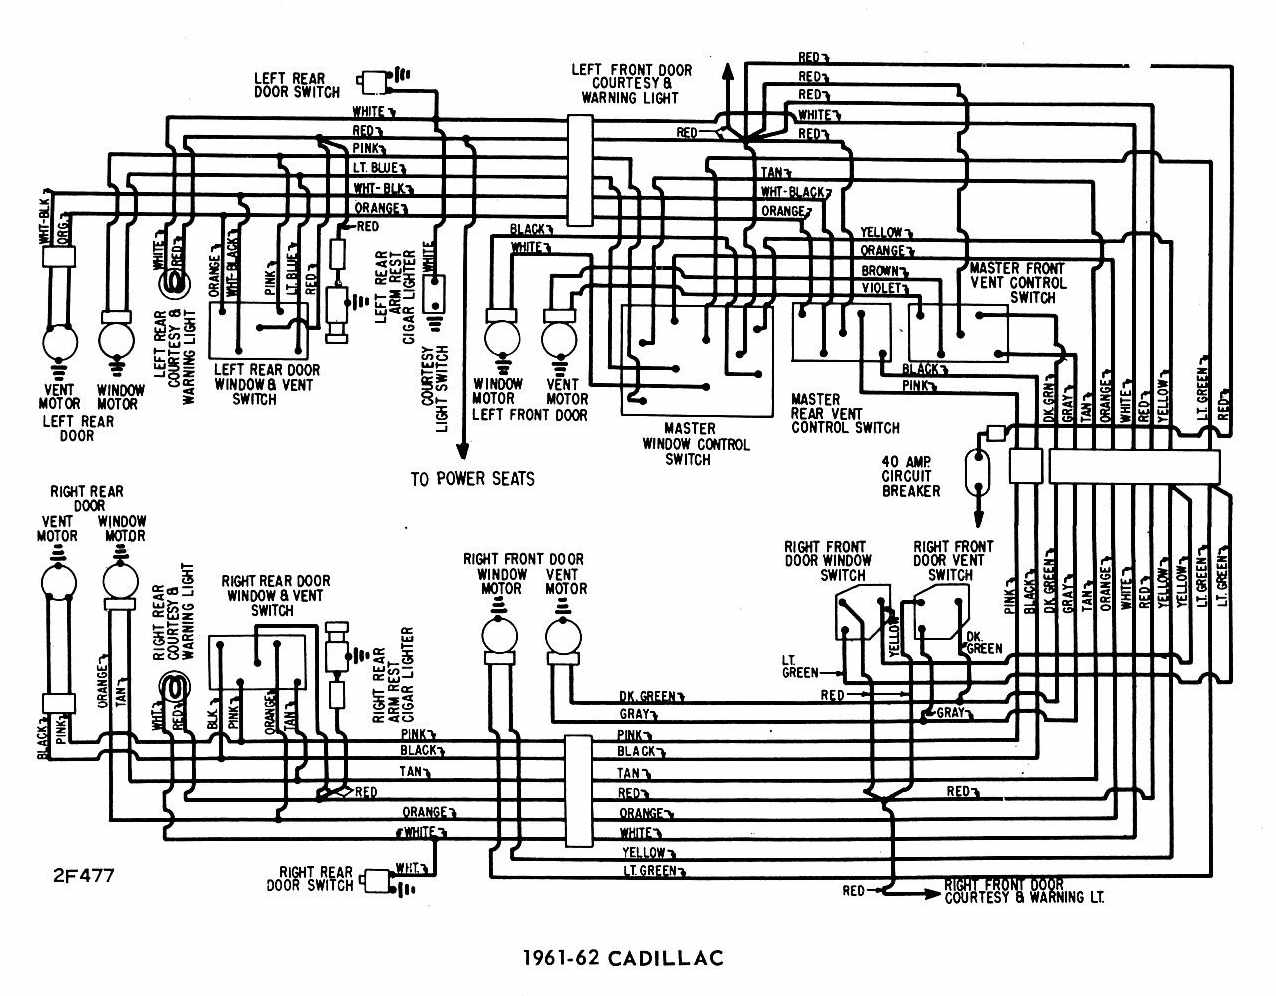 2001 chevrolet prizm wiring diagram